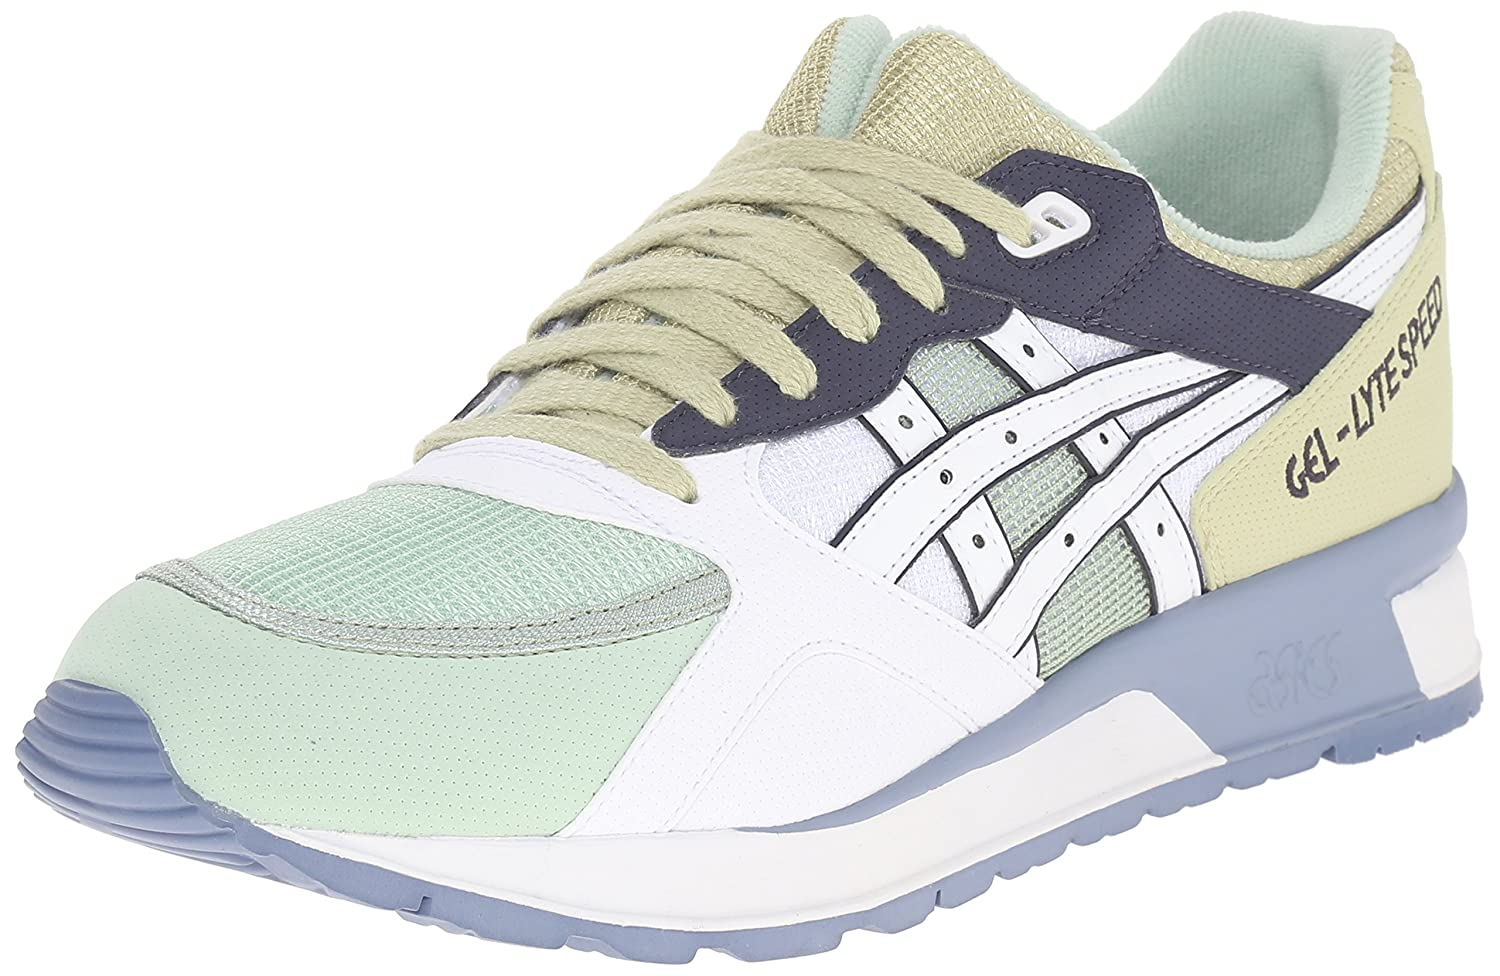 ASICS GEL Lyte Speed Retro Running Shoe B00ZQ9FEEM 10 M US|White/White